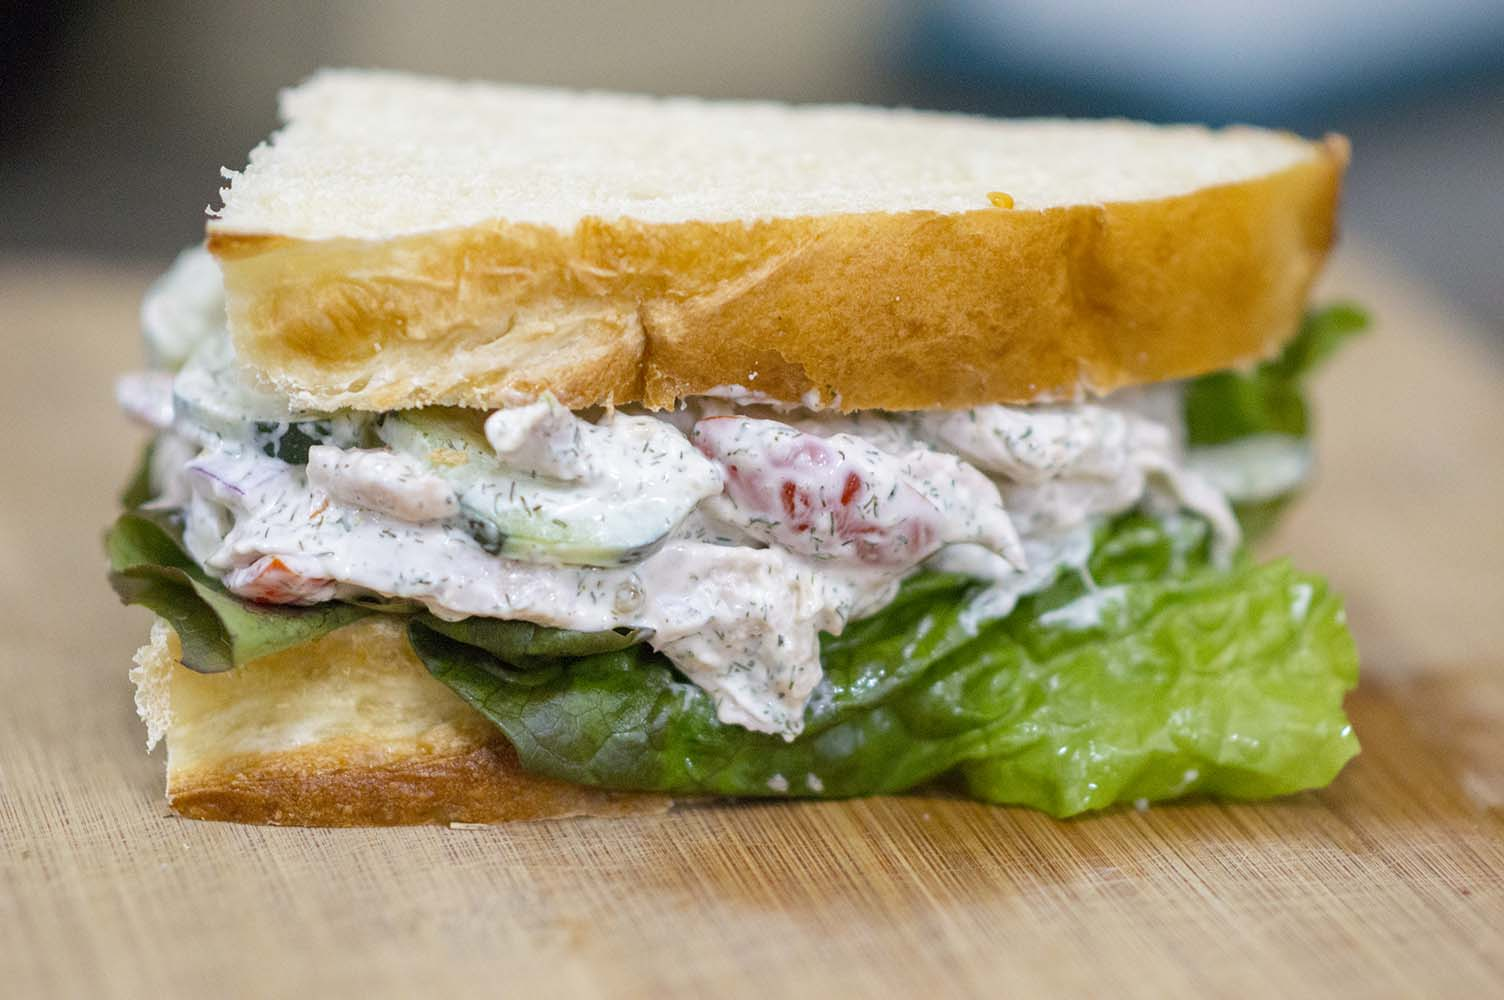 Cucumber Dill Chicken Salad served on bread to make a sandwich